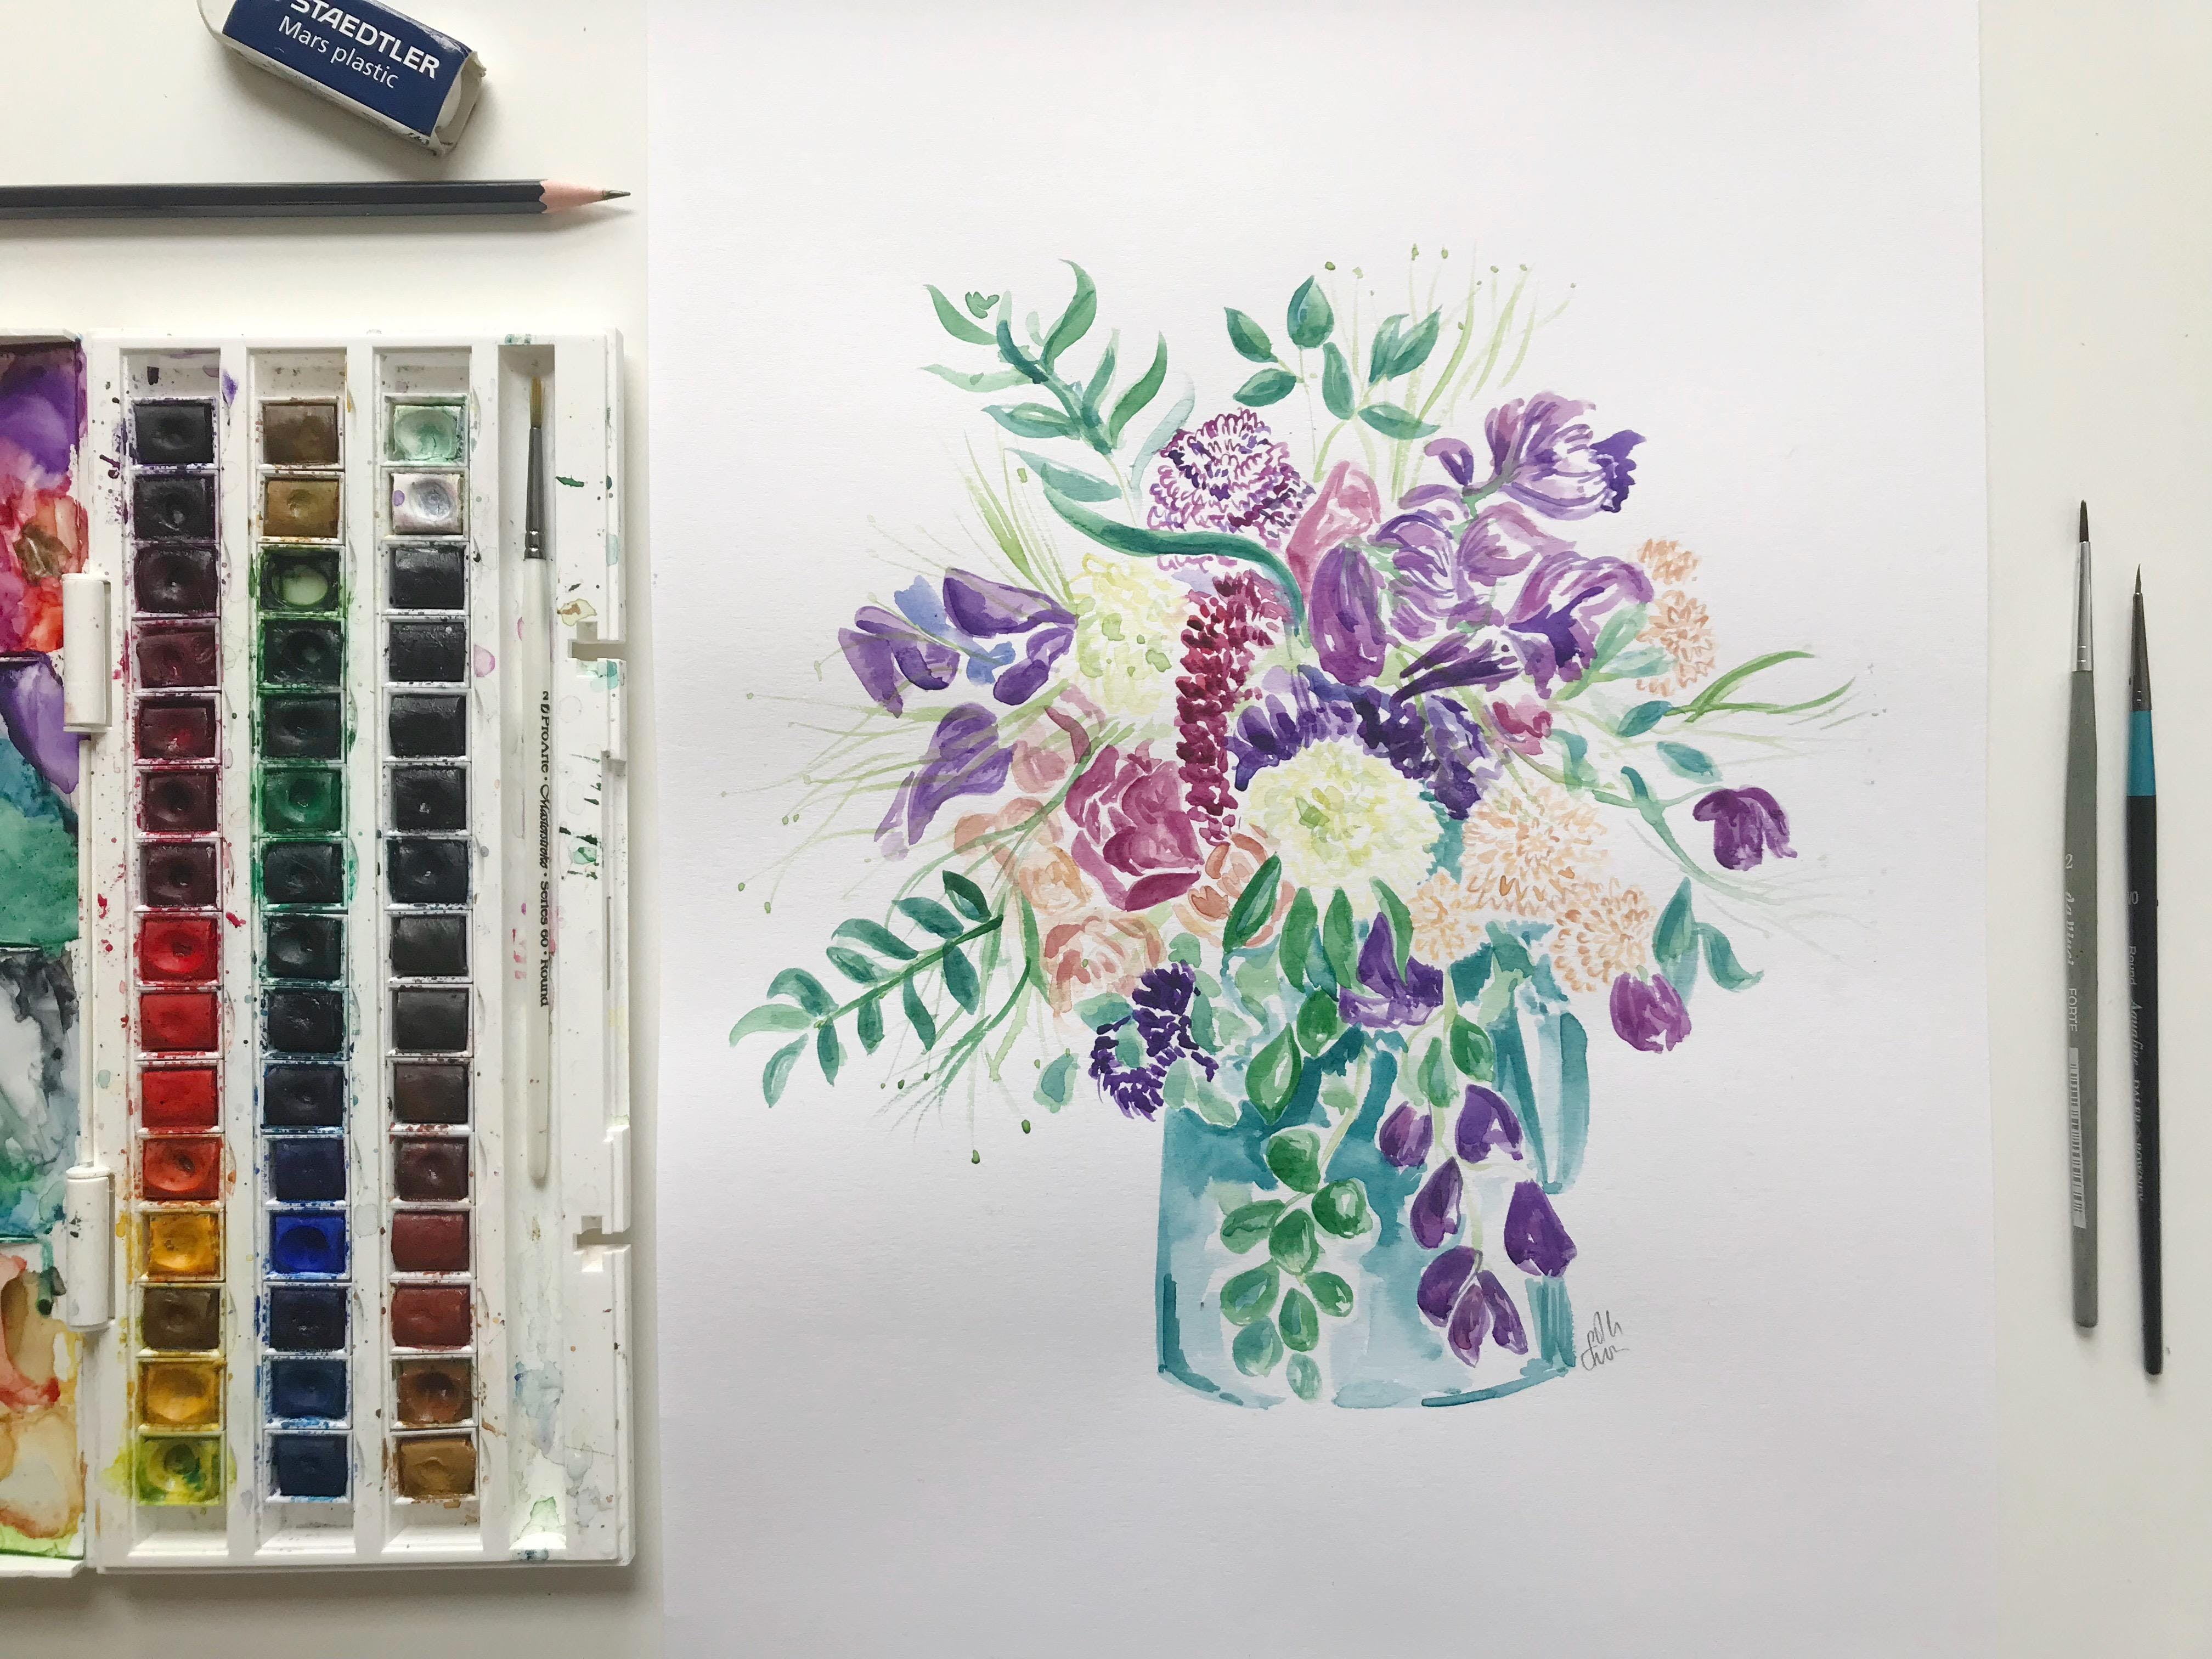 Make Your Own Watercolour Flowers Painting - for Beginners